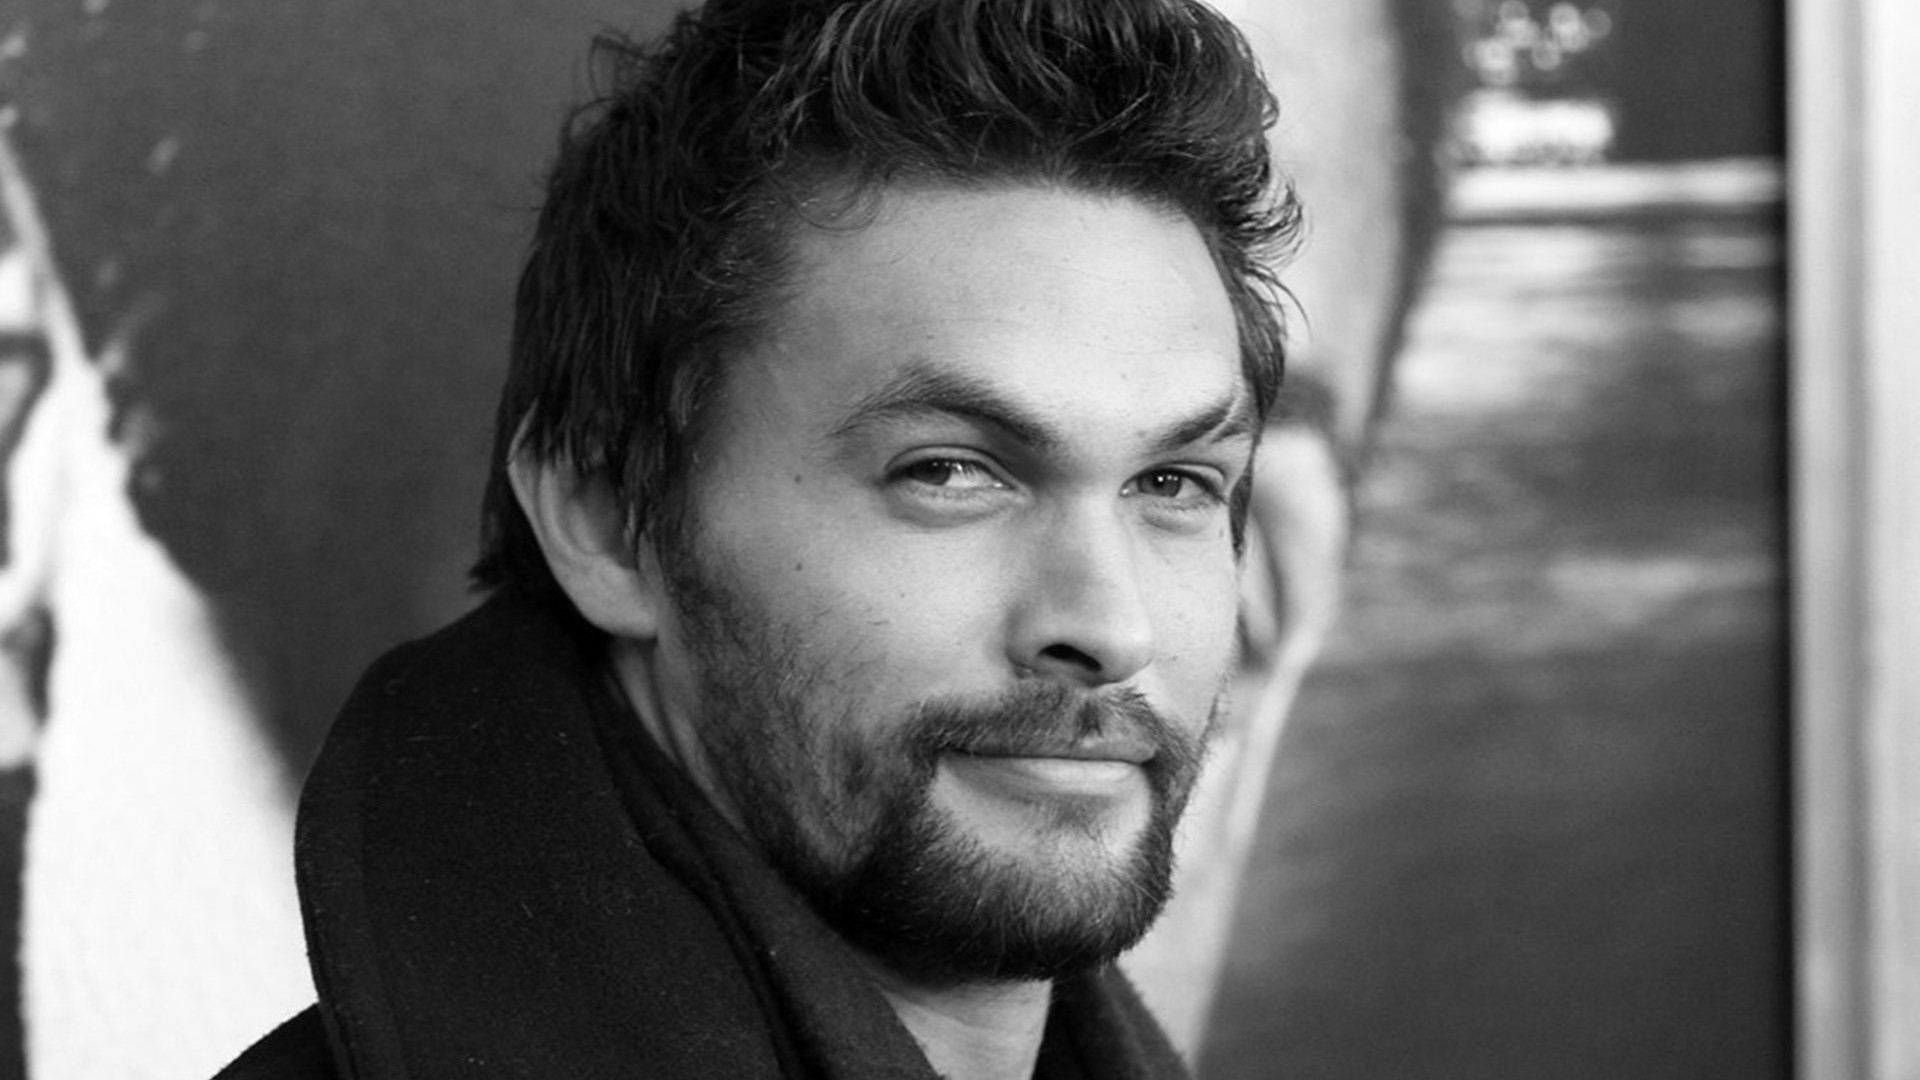 Joseph Jason Namakaeha Momoa born August 1 1979 is an American actor writer director producer and model He is known for his television roles as Ronon Dex on